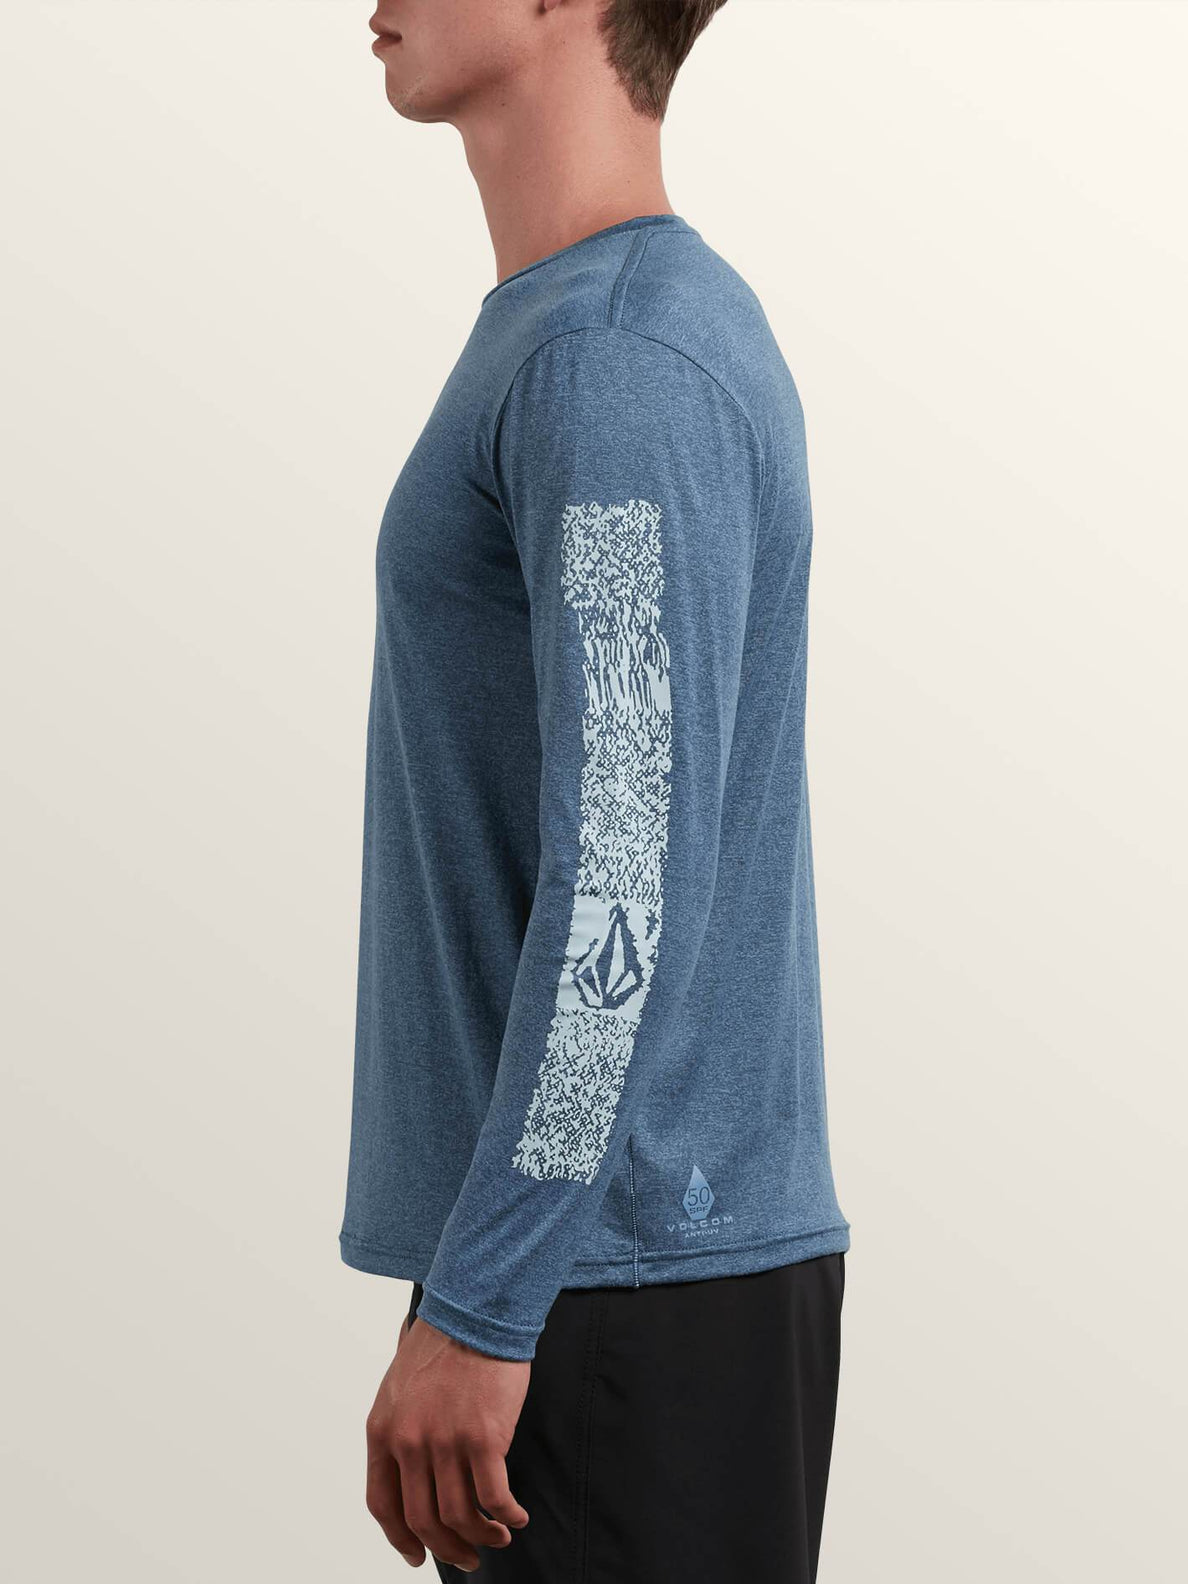 Lido Pixel Heather Long Sleeve Rashguard In Deep Blue, Alternate View